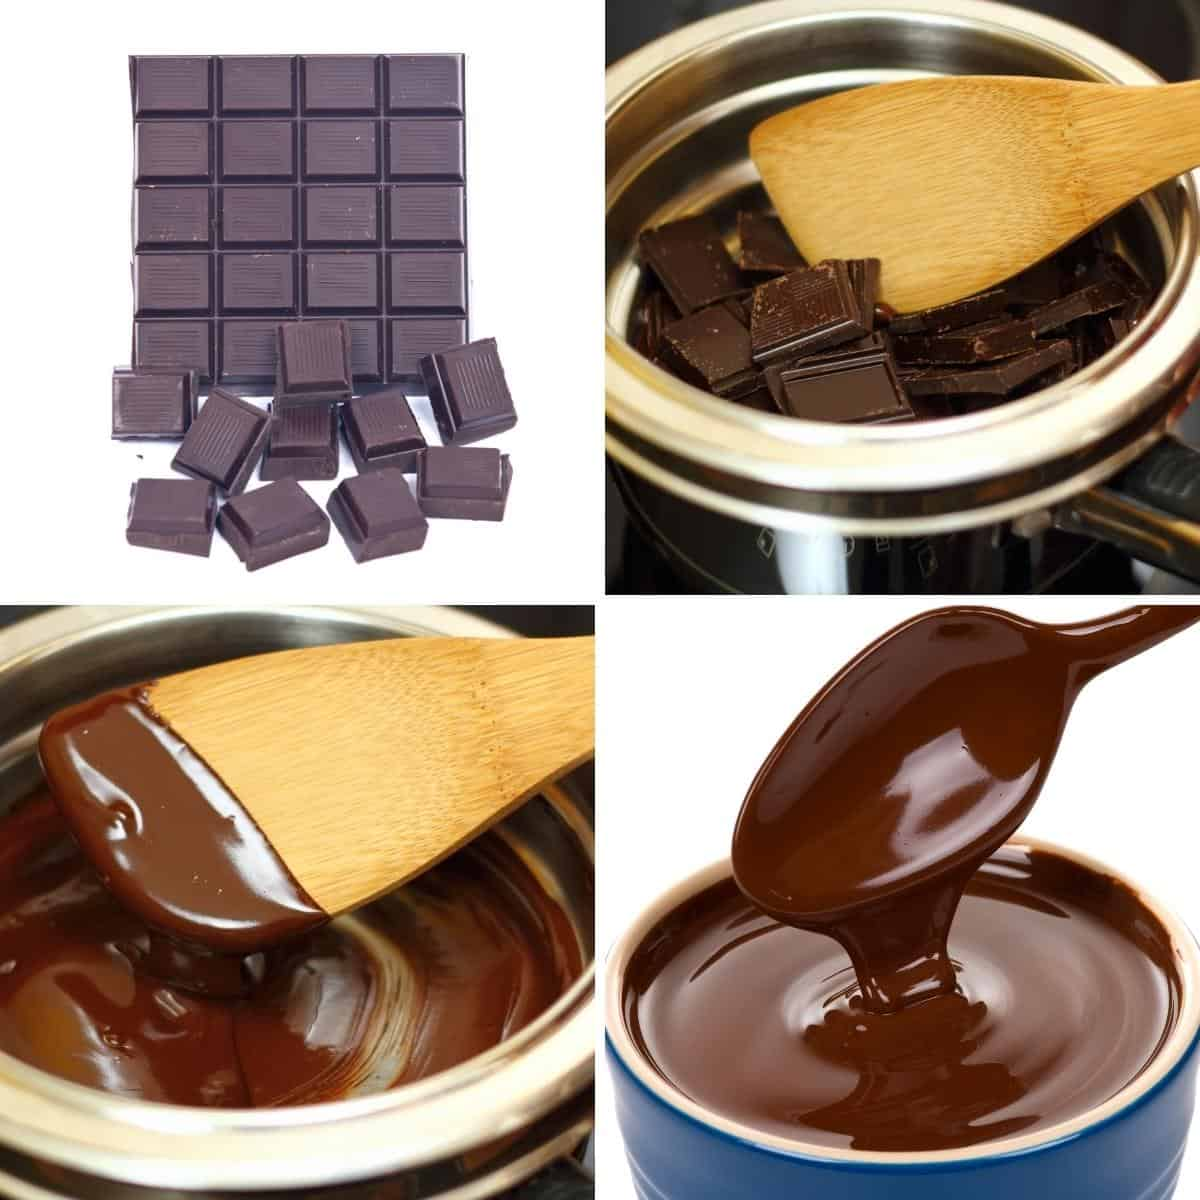 Melting chocolate in a double boiler